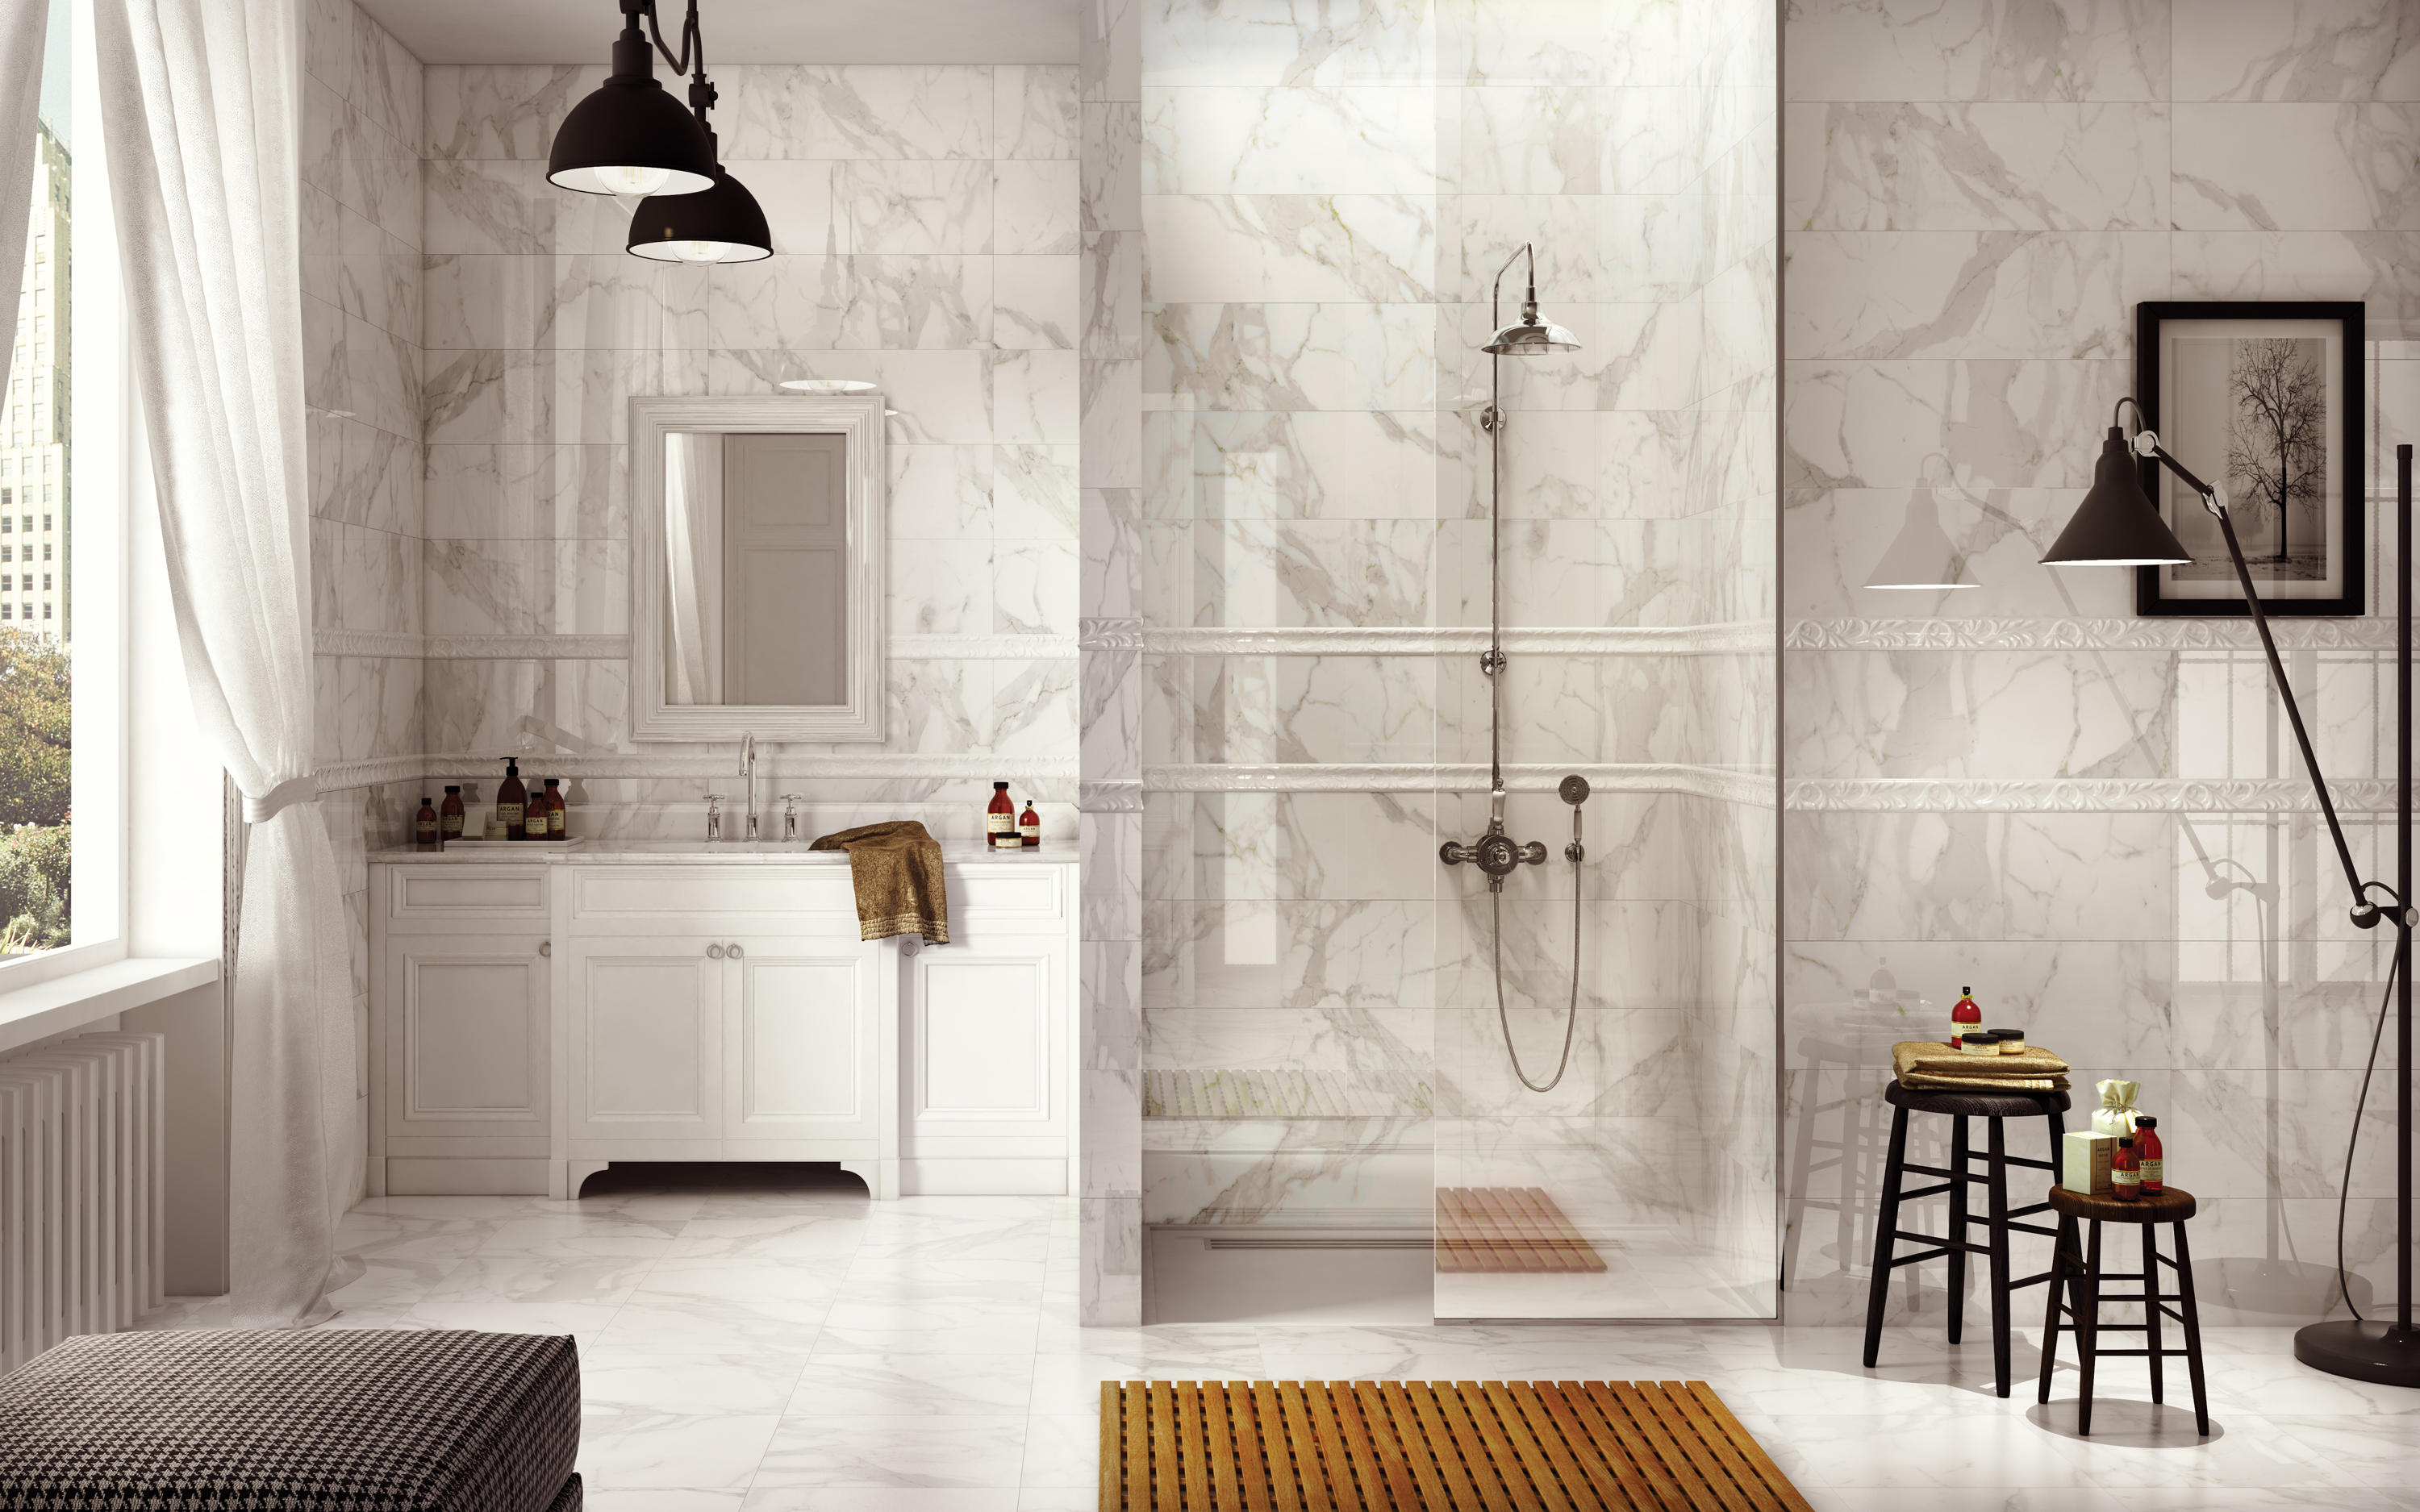 PIETRA SANTA CALACATTA - Ceramic tiles from Cancos | Architonic